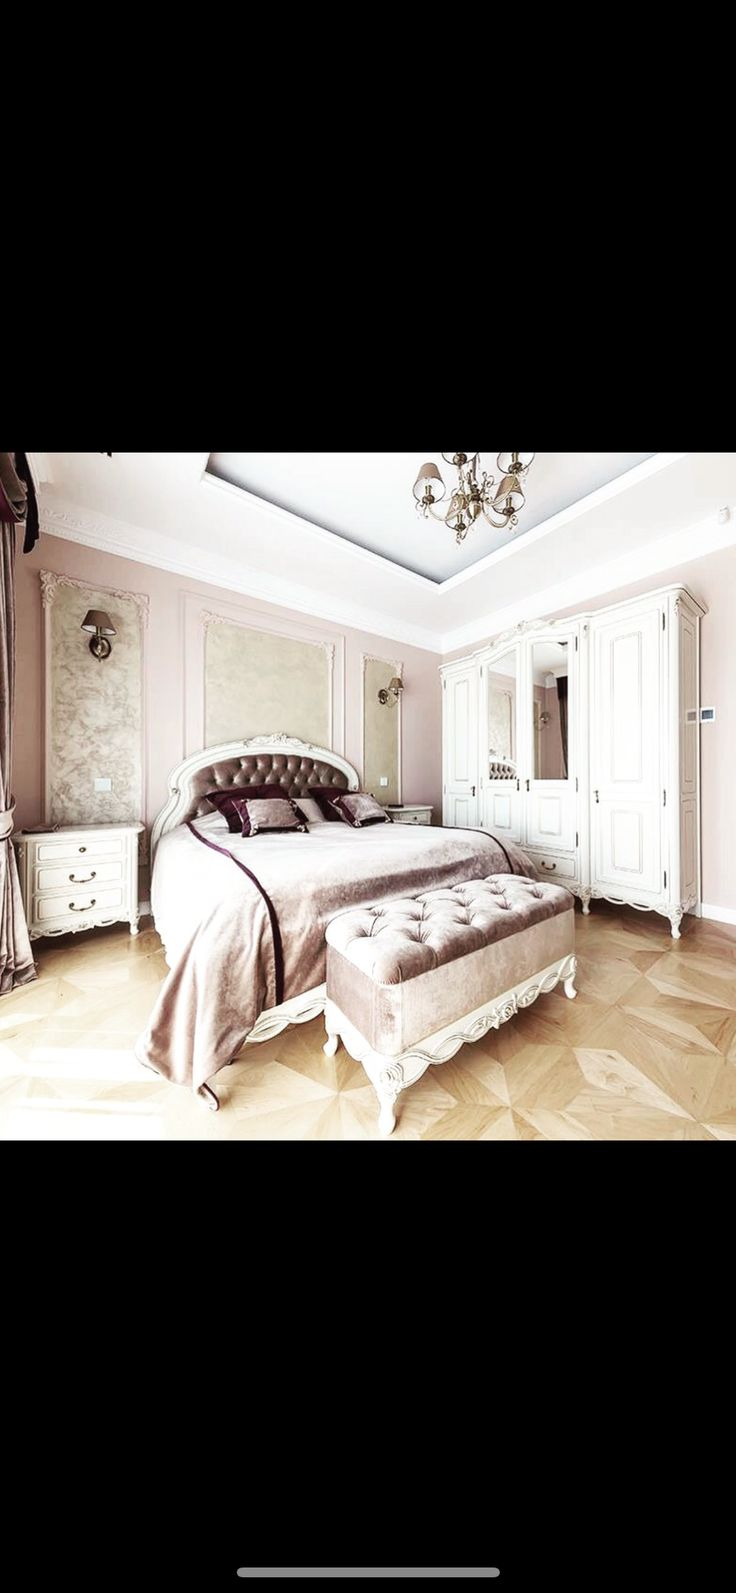 Flora collection. FLORA bedroom. Simex furniture, romanian brand! Hand-crafted solid wood furniture!